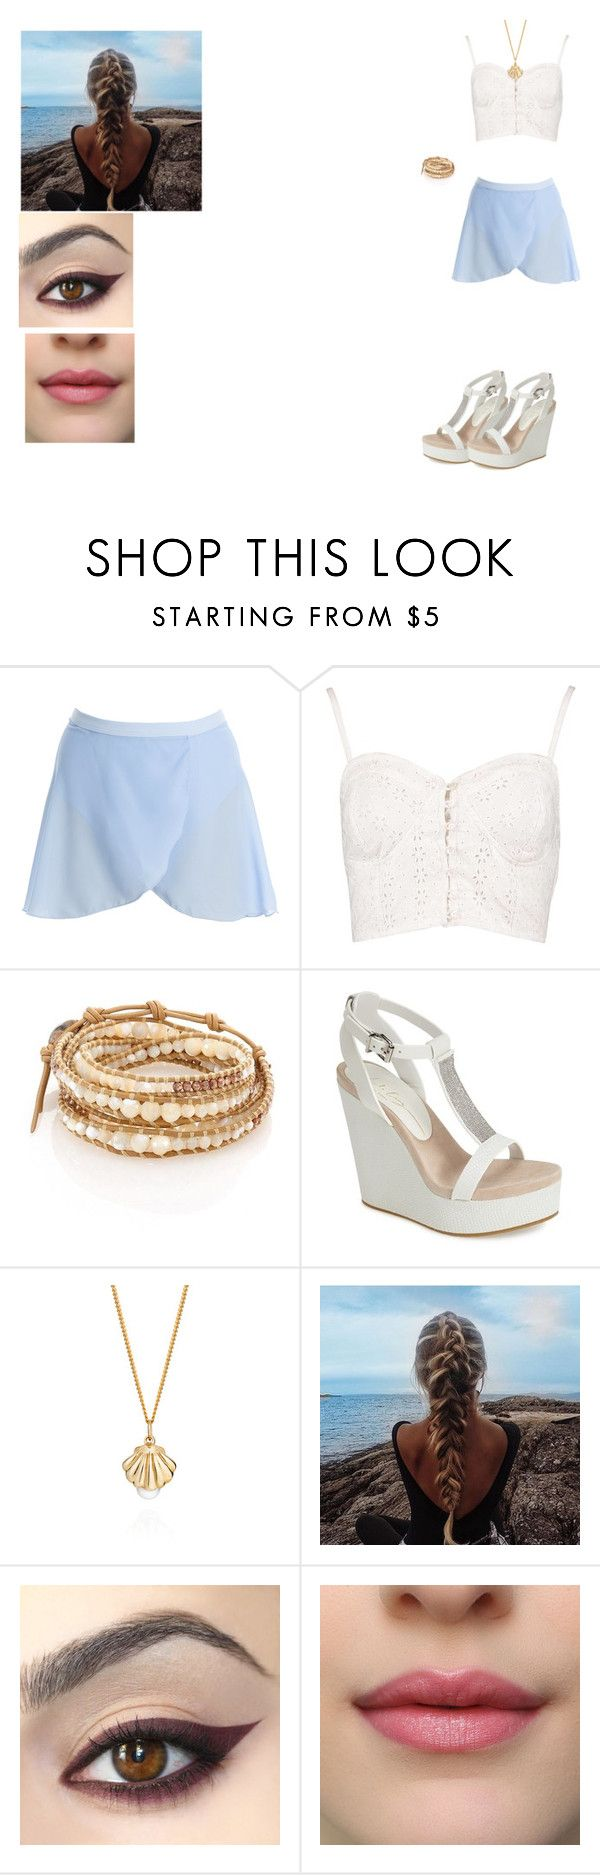 """Sin título #240"" by b-dreams ❤ liked on Polyvore featuring Boohoo, Chan Luu, Lola Cruz and Lee Renee"